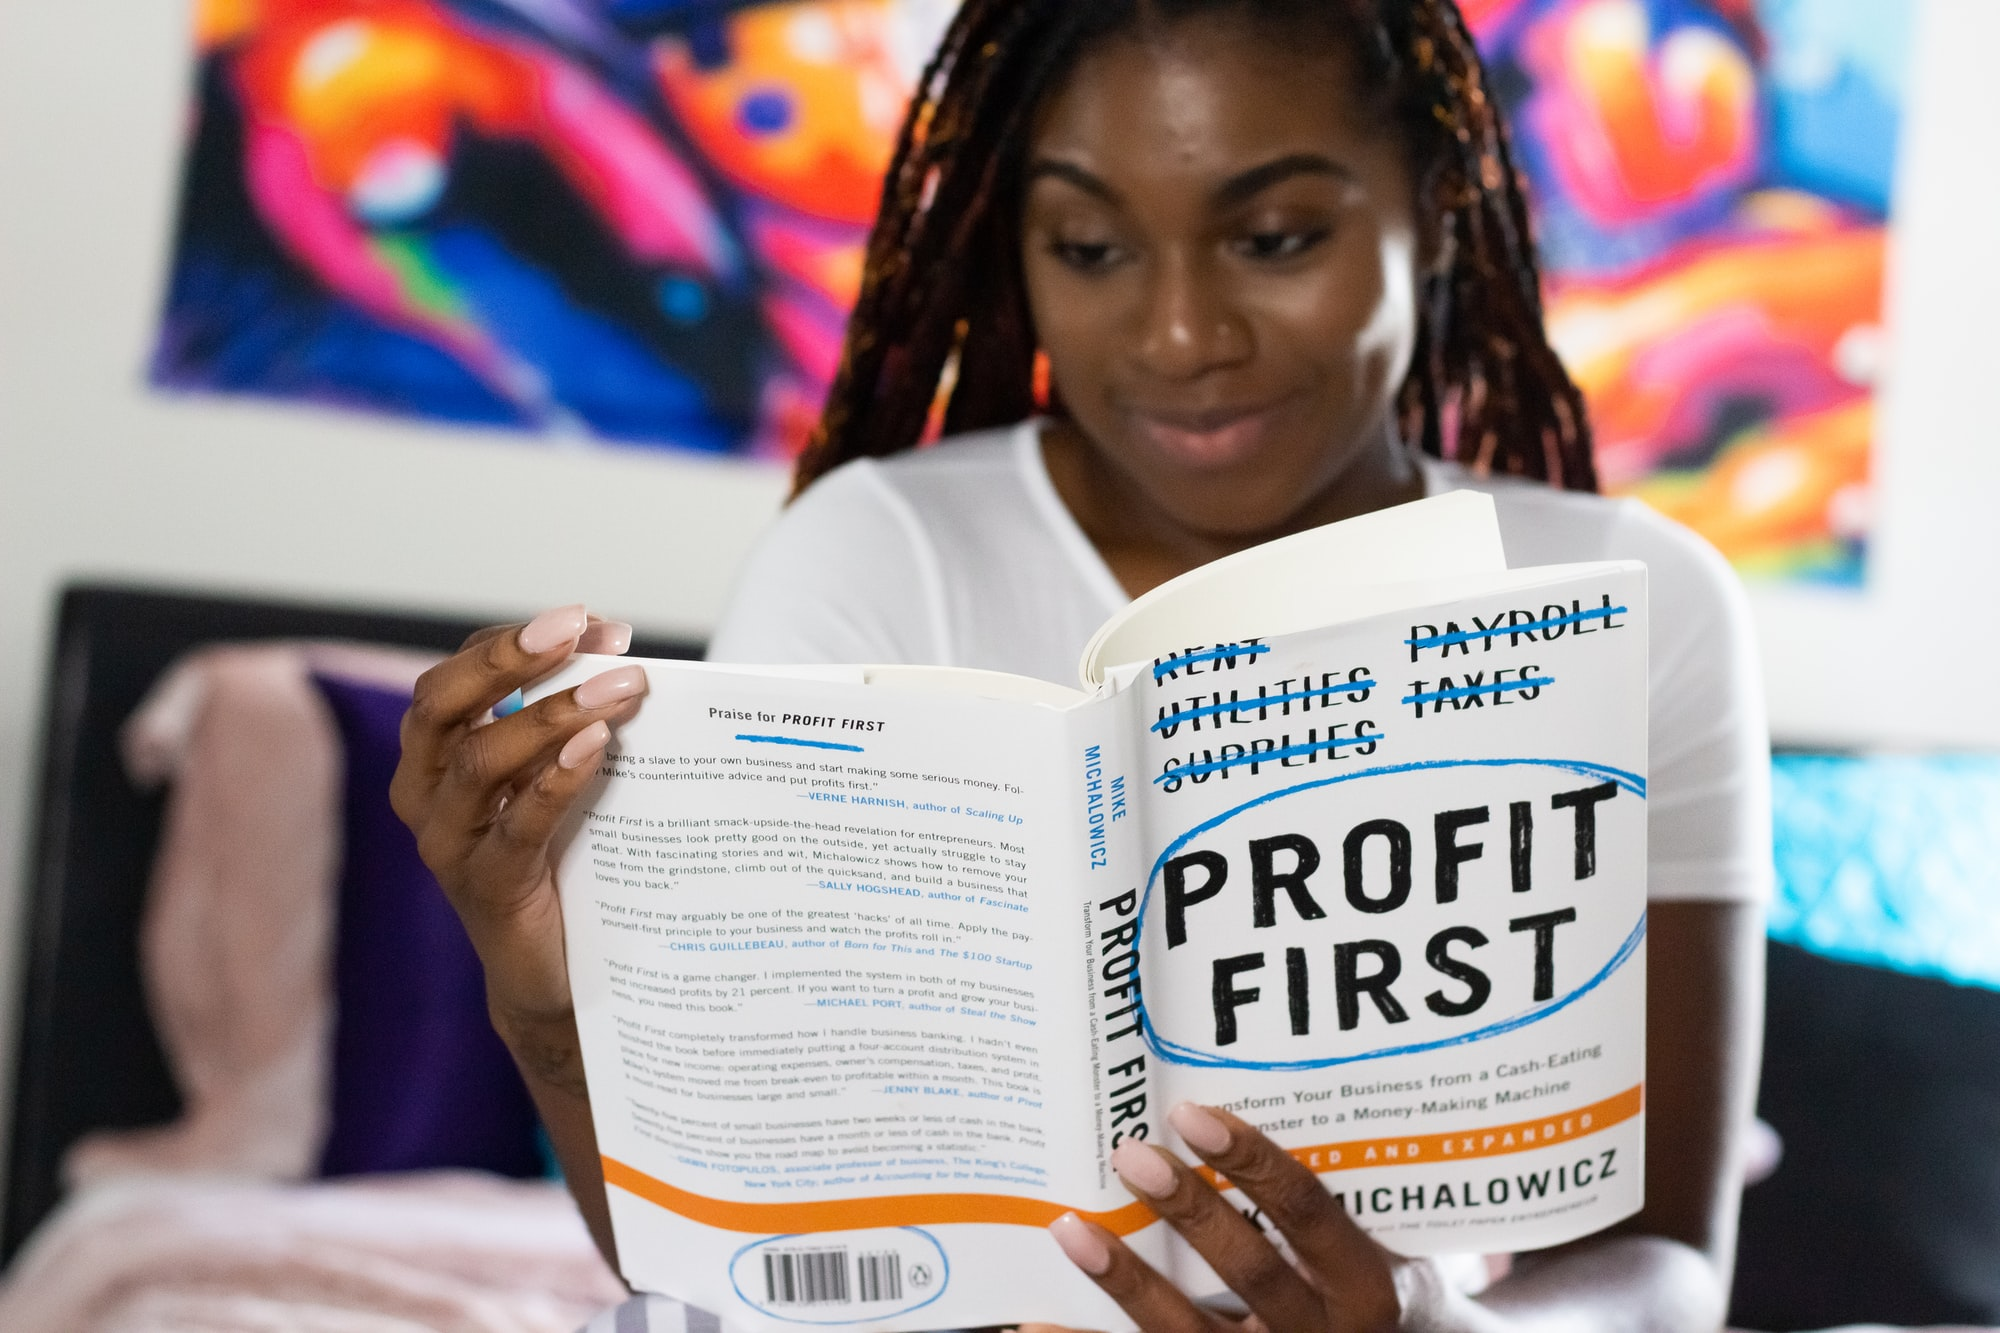 Take Your Profit First